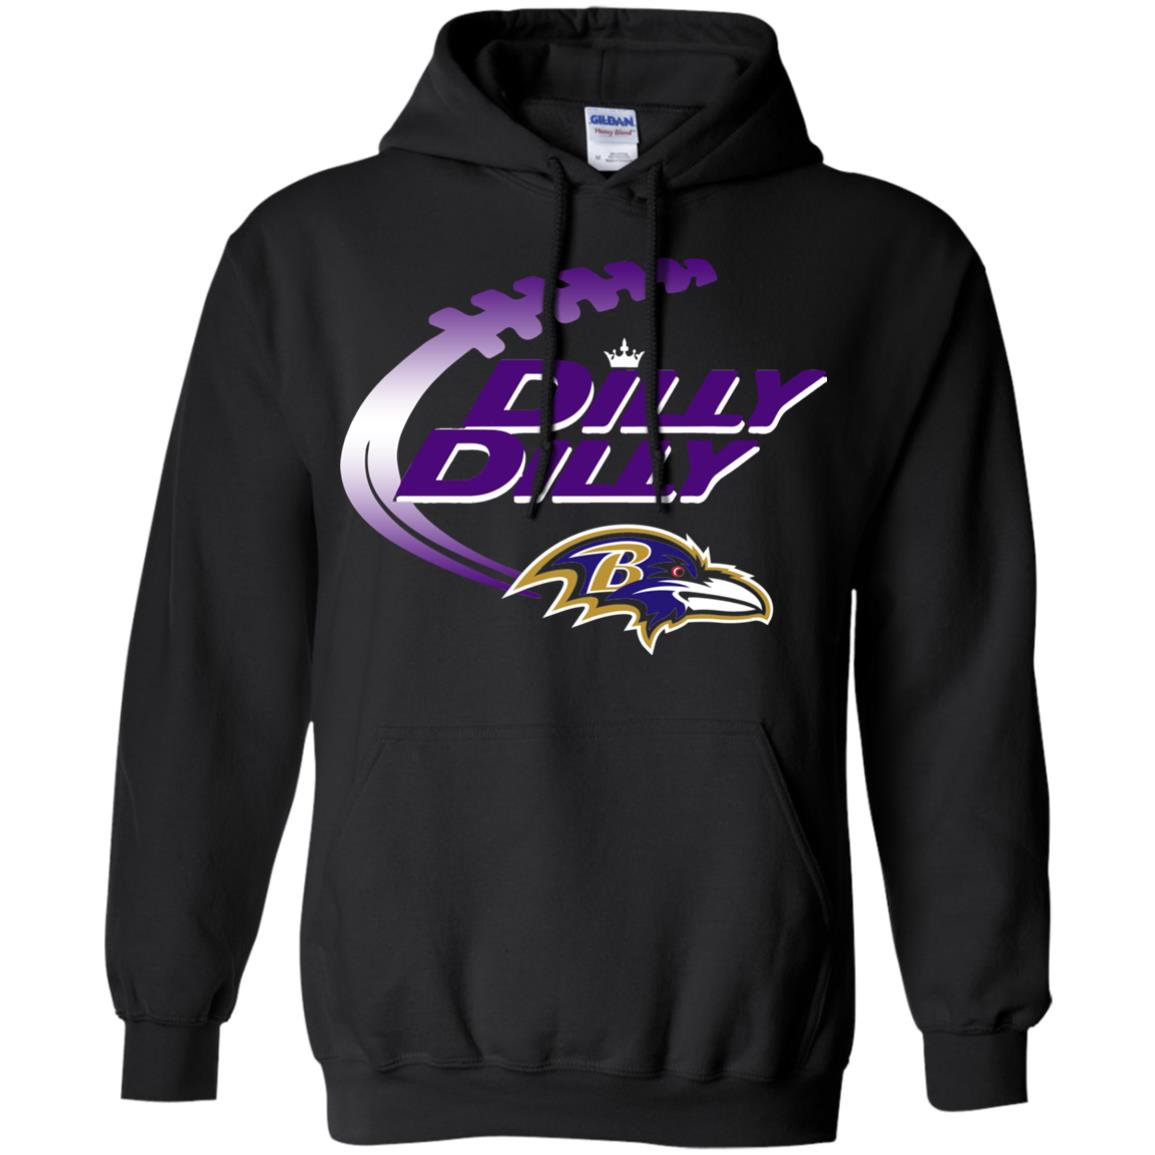 image 1876 - Dilly Dilly Baltimore Ravens Shirt, Hoodie, Long Sleeve